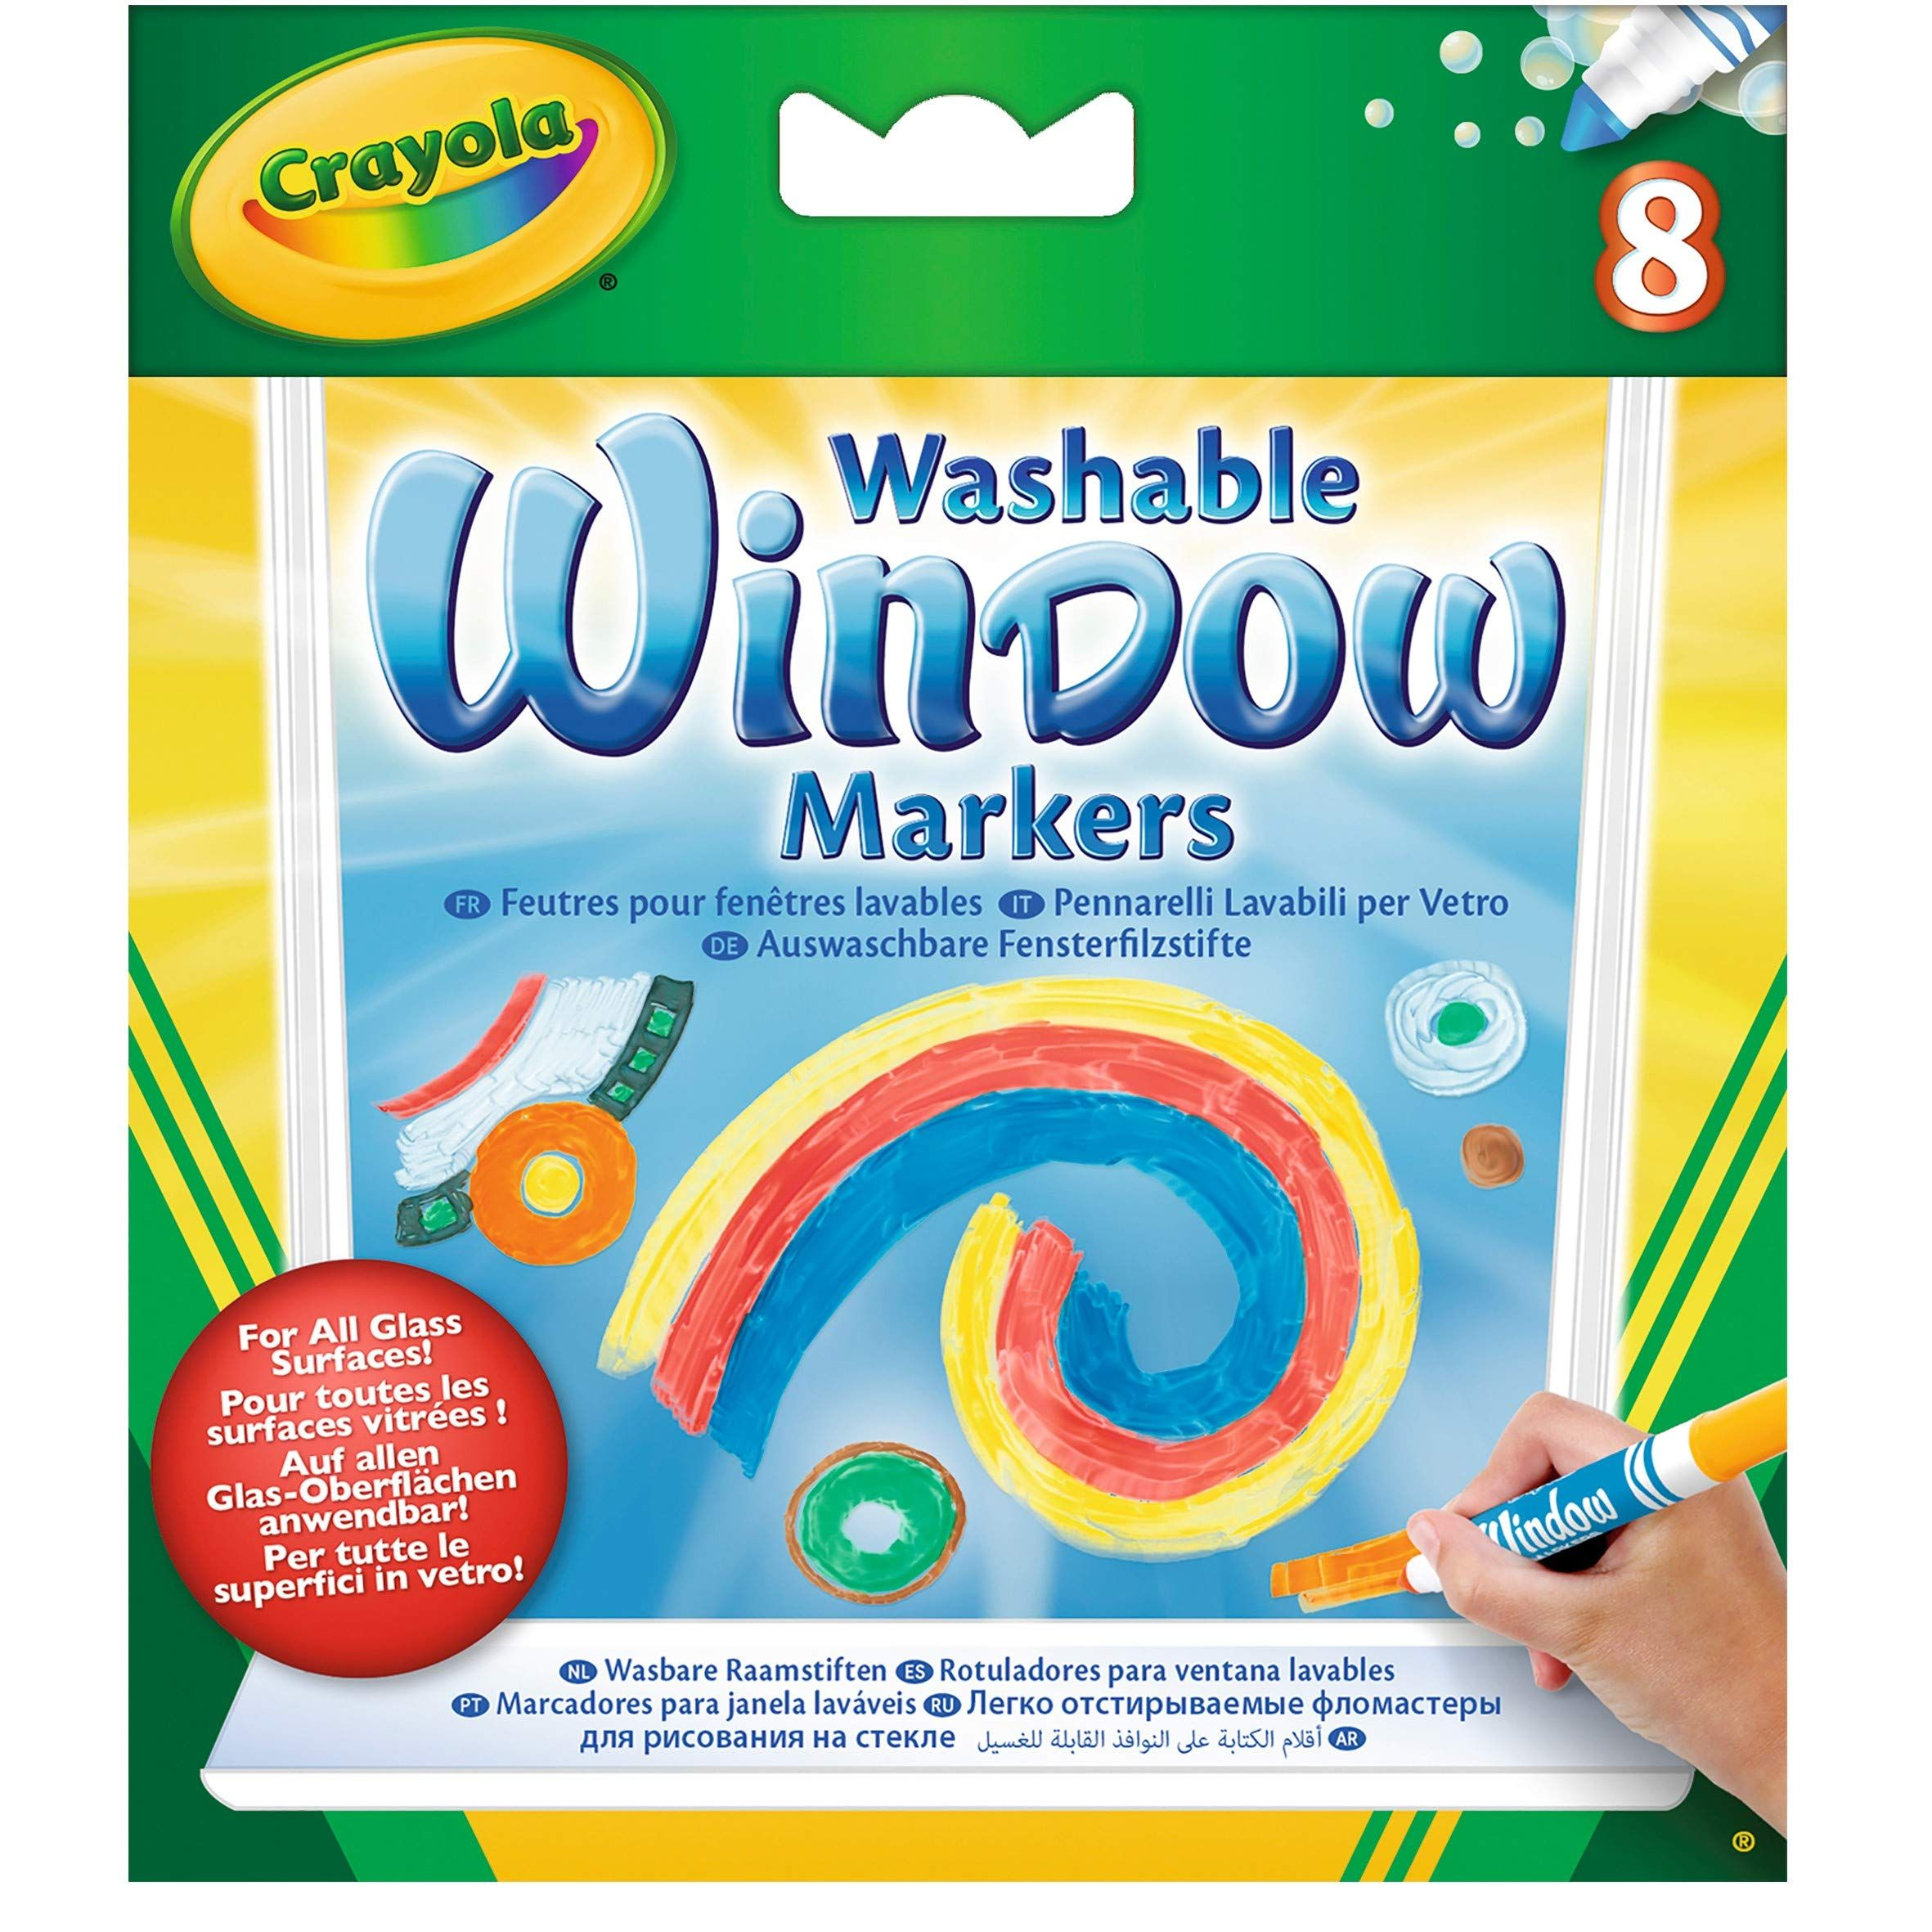 Crayola Washable Window Markers Art Tools 8 Different Colors Bright Bold Colors Works On All Glass Crayola Window Markers Window Markers Washable Markers